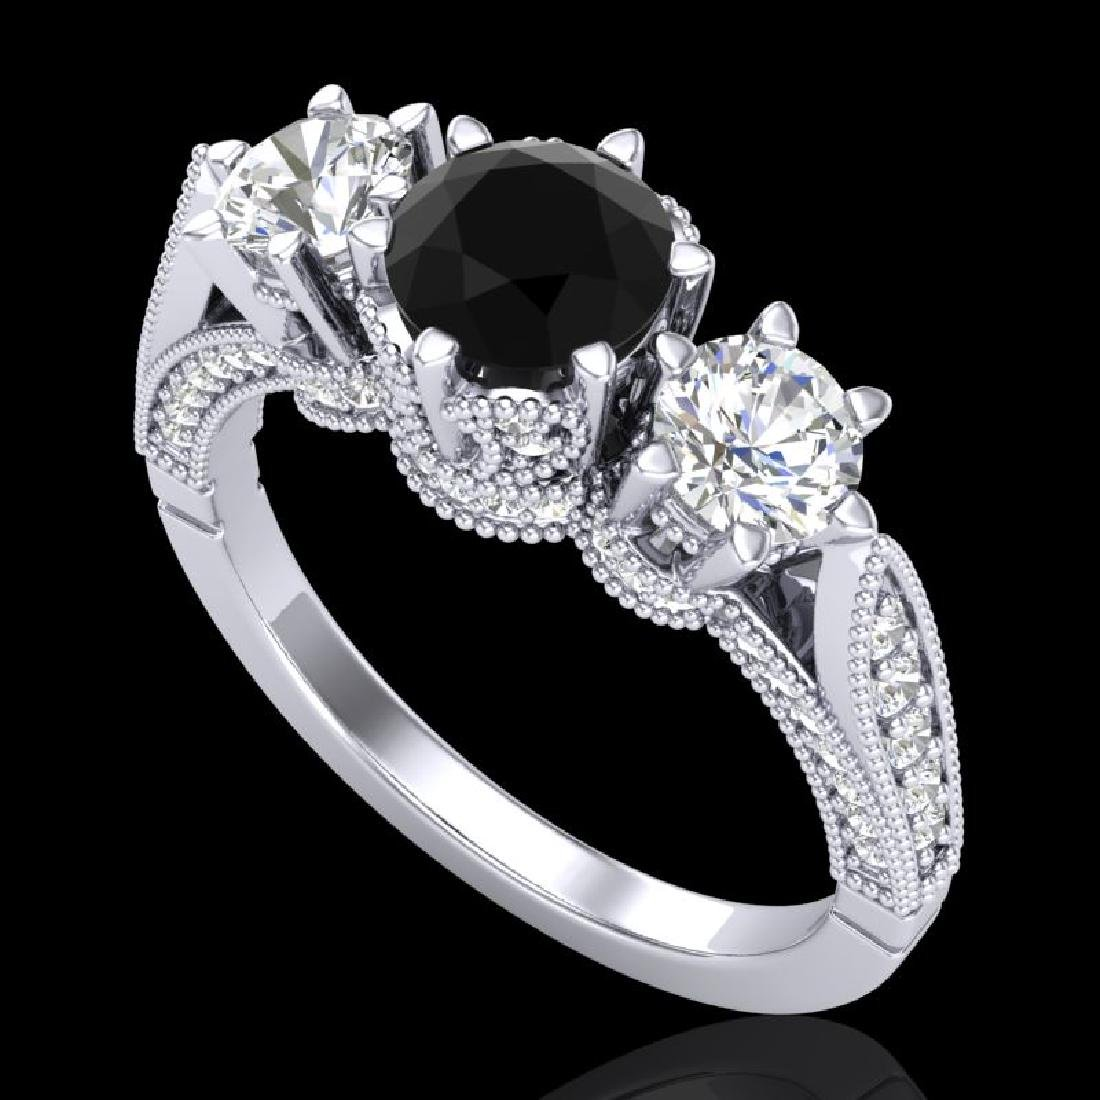 2.18 CTW Fancy Black Diamond Solitaire Art Deco 3 Stone